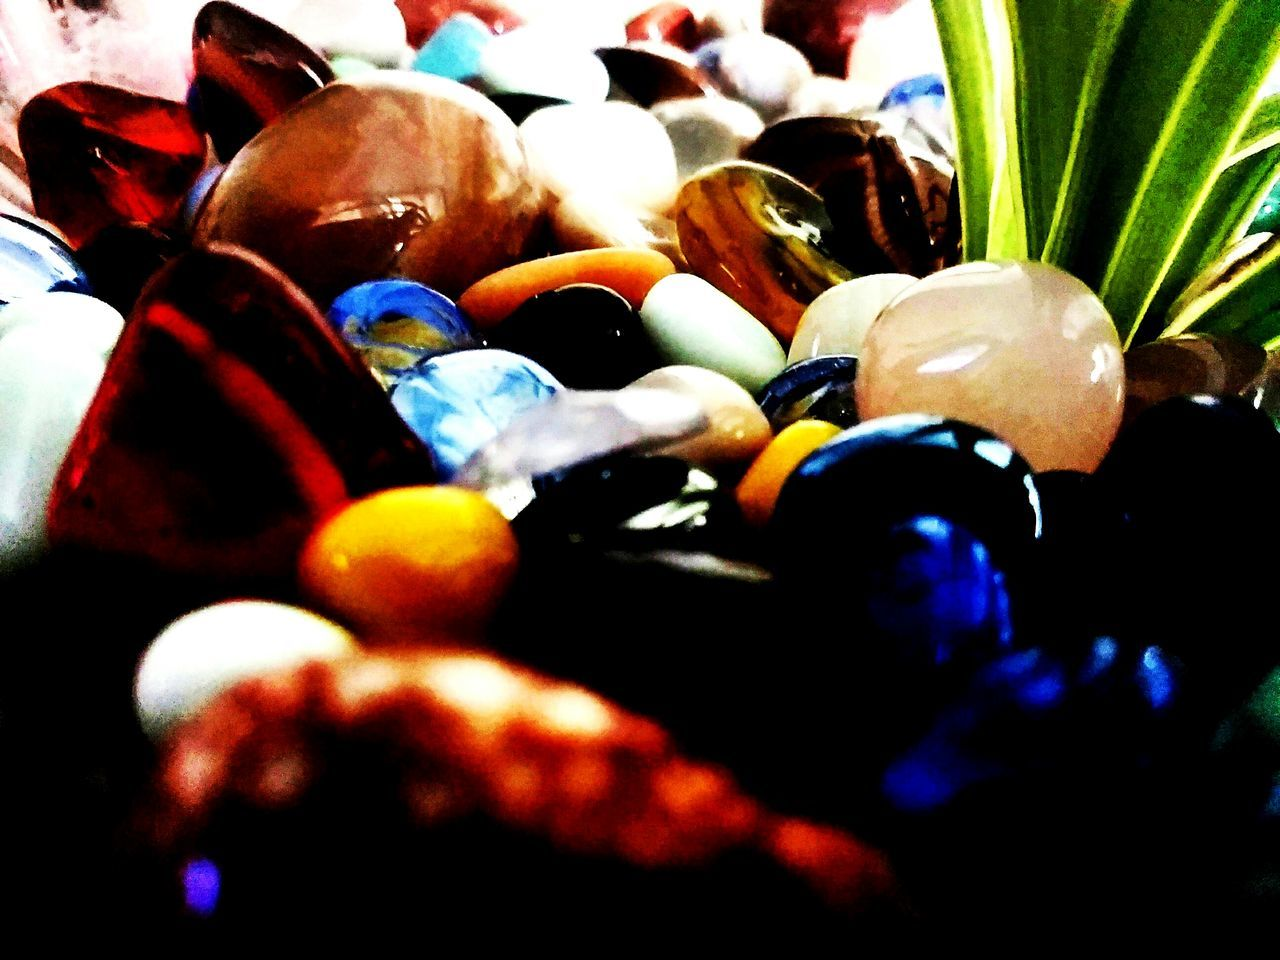 Tgere are ni lijes in nature, only areas of colours, one against another. Close-up Multi Colored Pebbles Stones Colorful